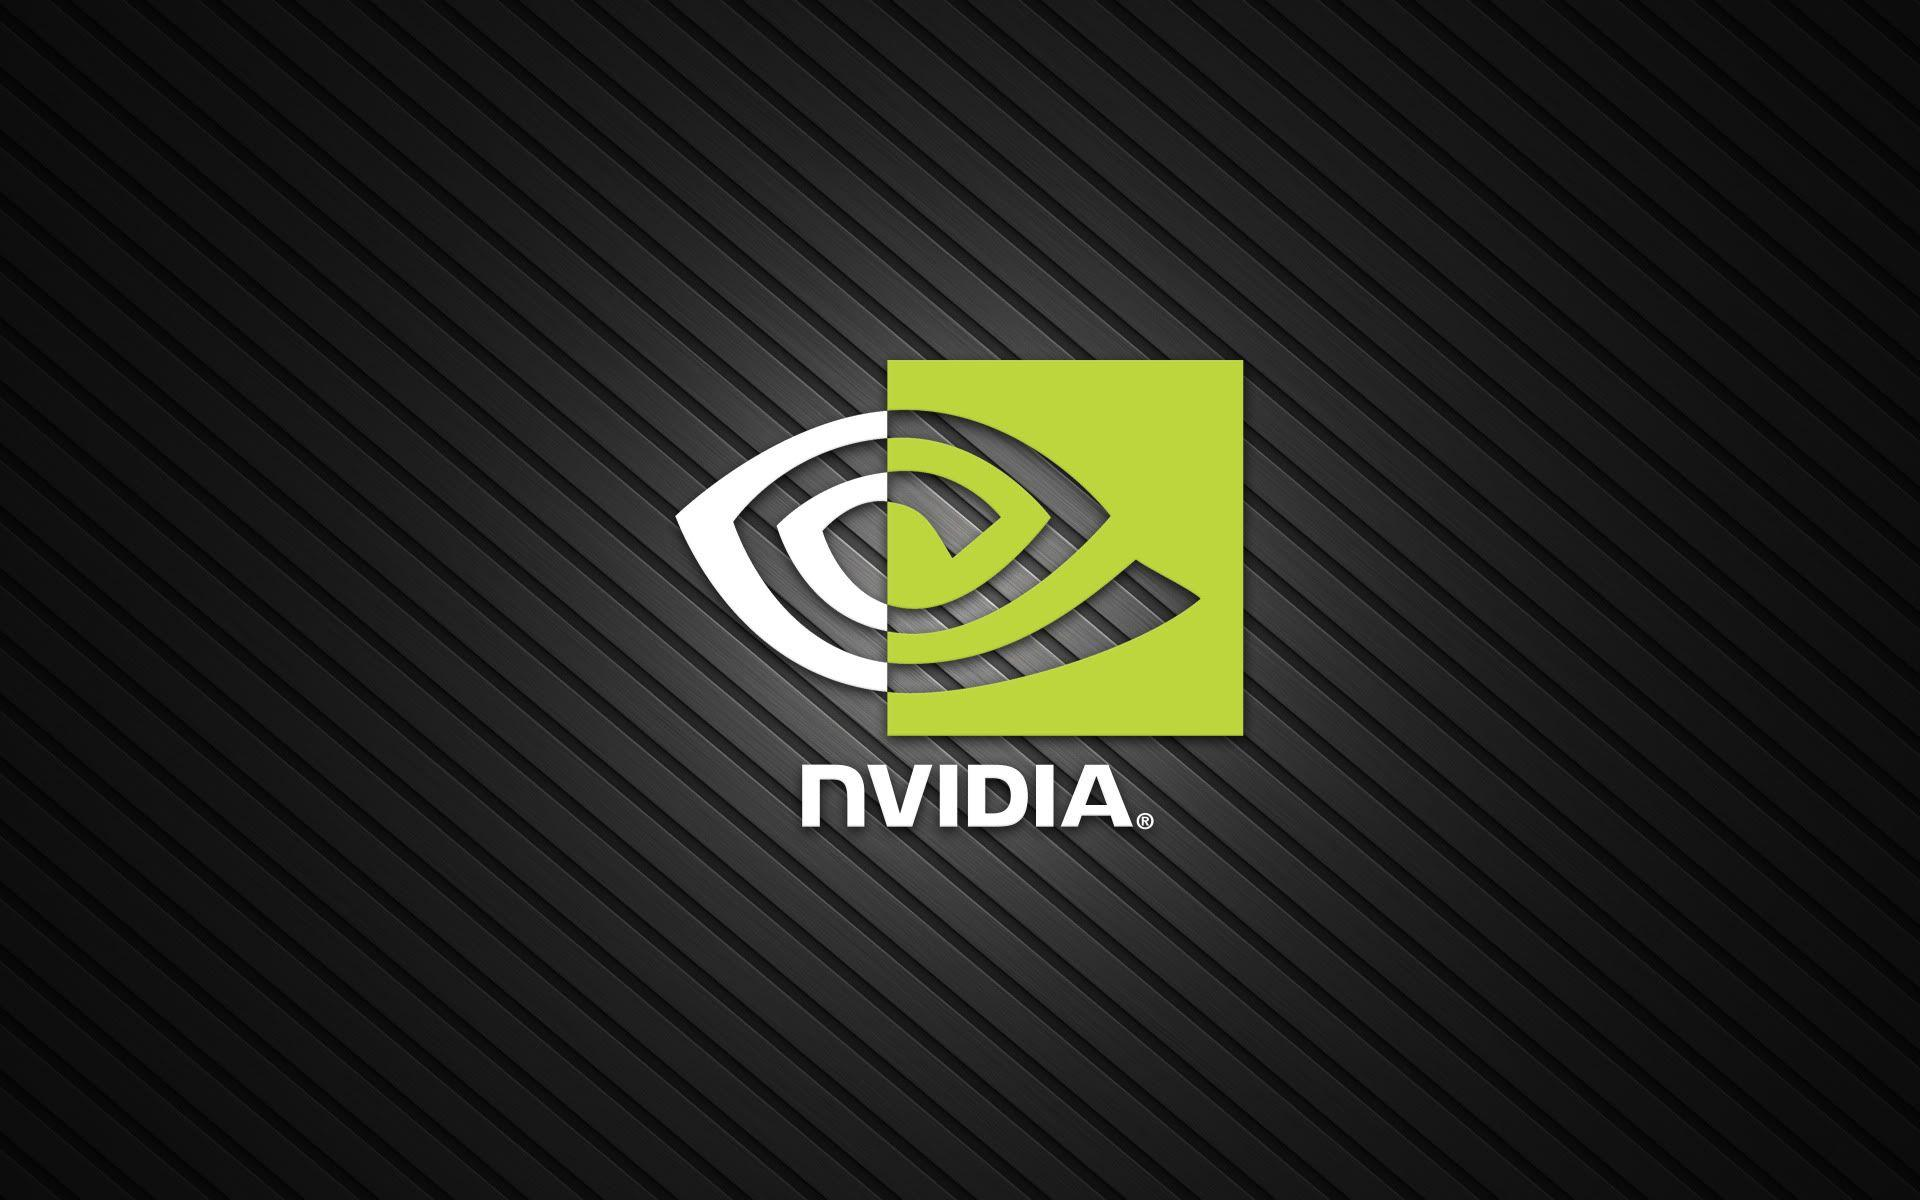 nvidia wallpapers wallpaper cave